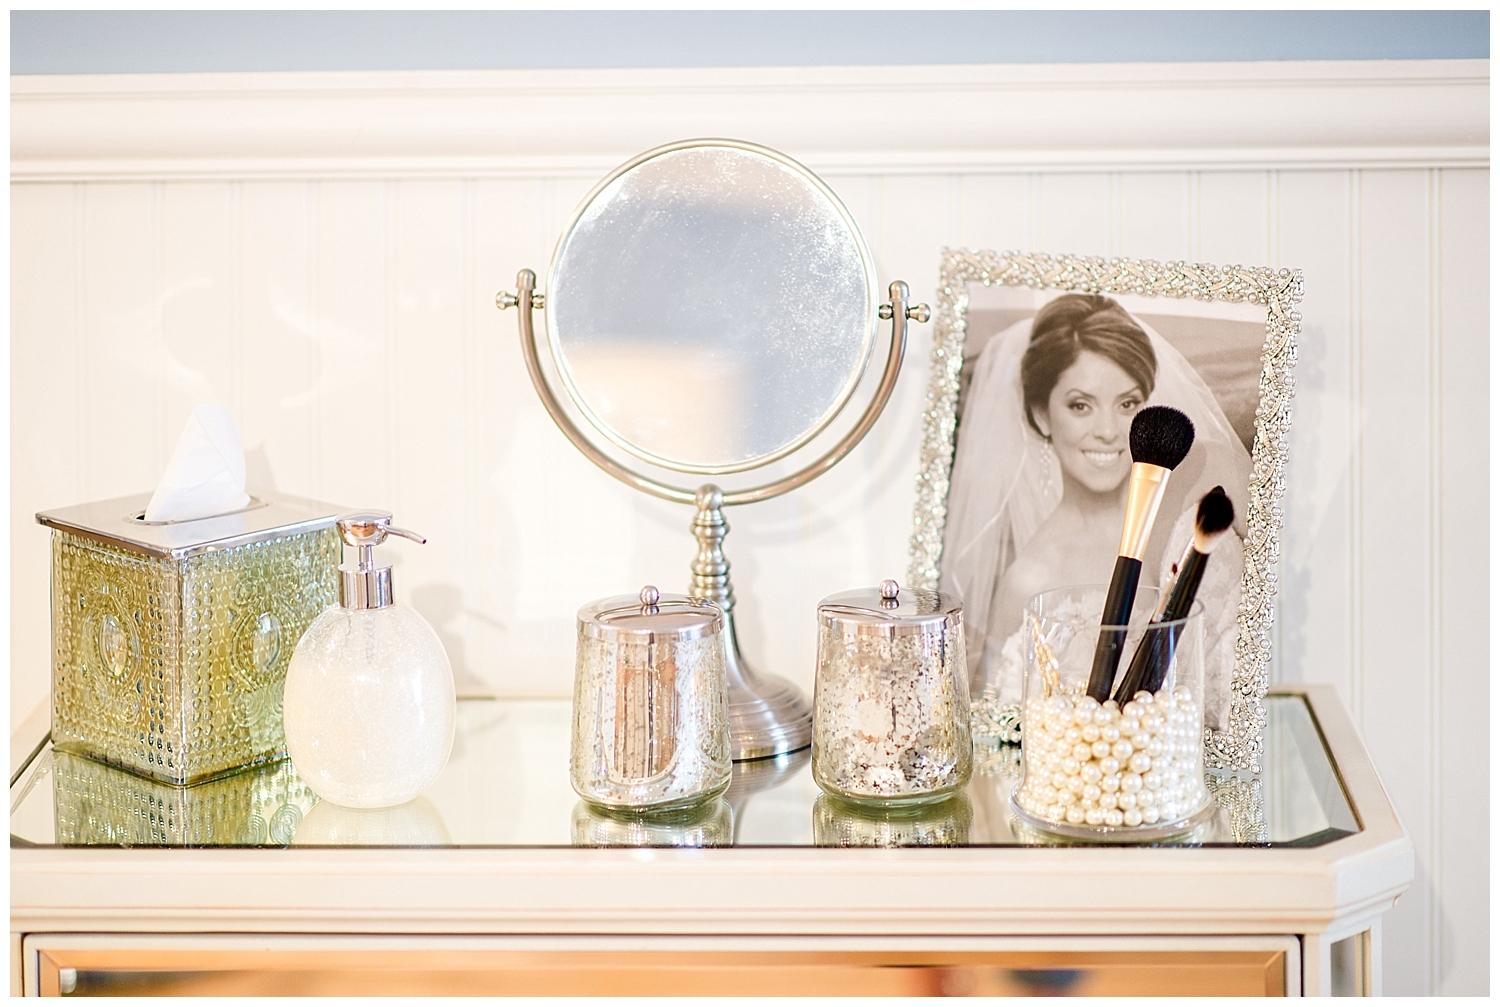 Red Oak Weddings | Jacqueline Cicala Beauty Bridal Atelier | Monika de Myer Photography